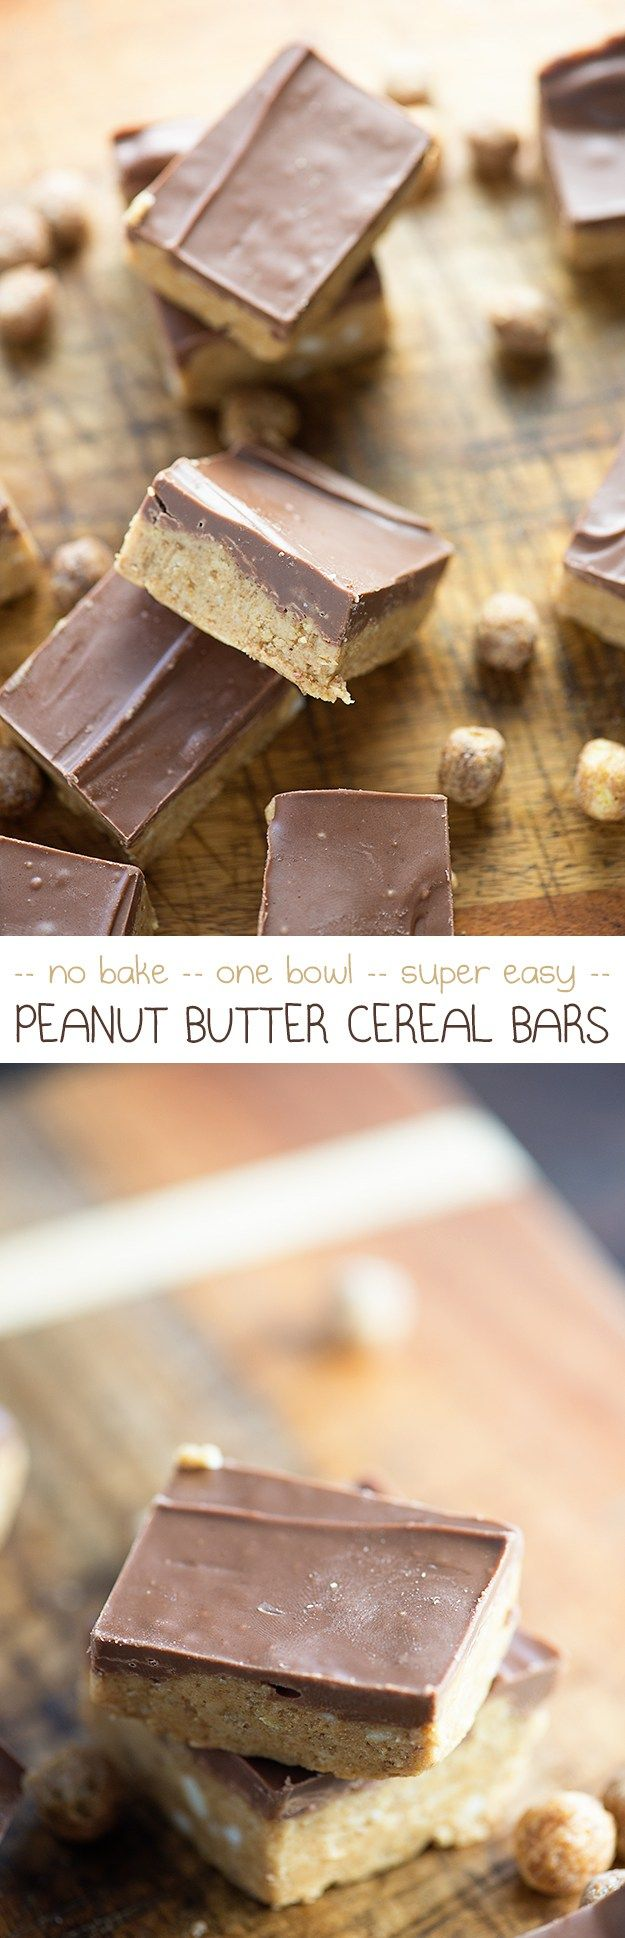 No Bake Peanut Butter Bars - these have an extra burst of chocolate and peanut butter from Reese's Puffs cereal! My kids beg for these bars.